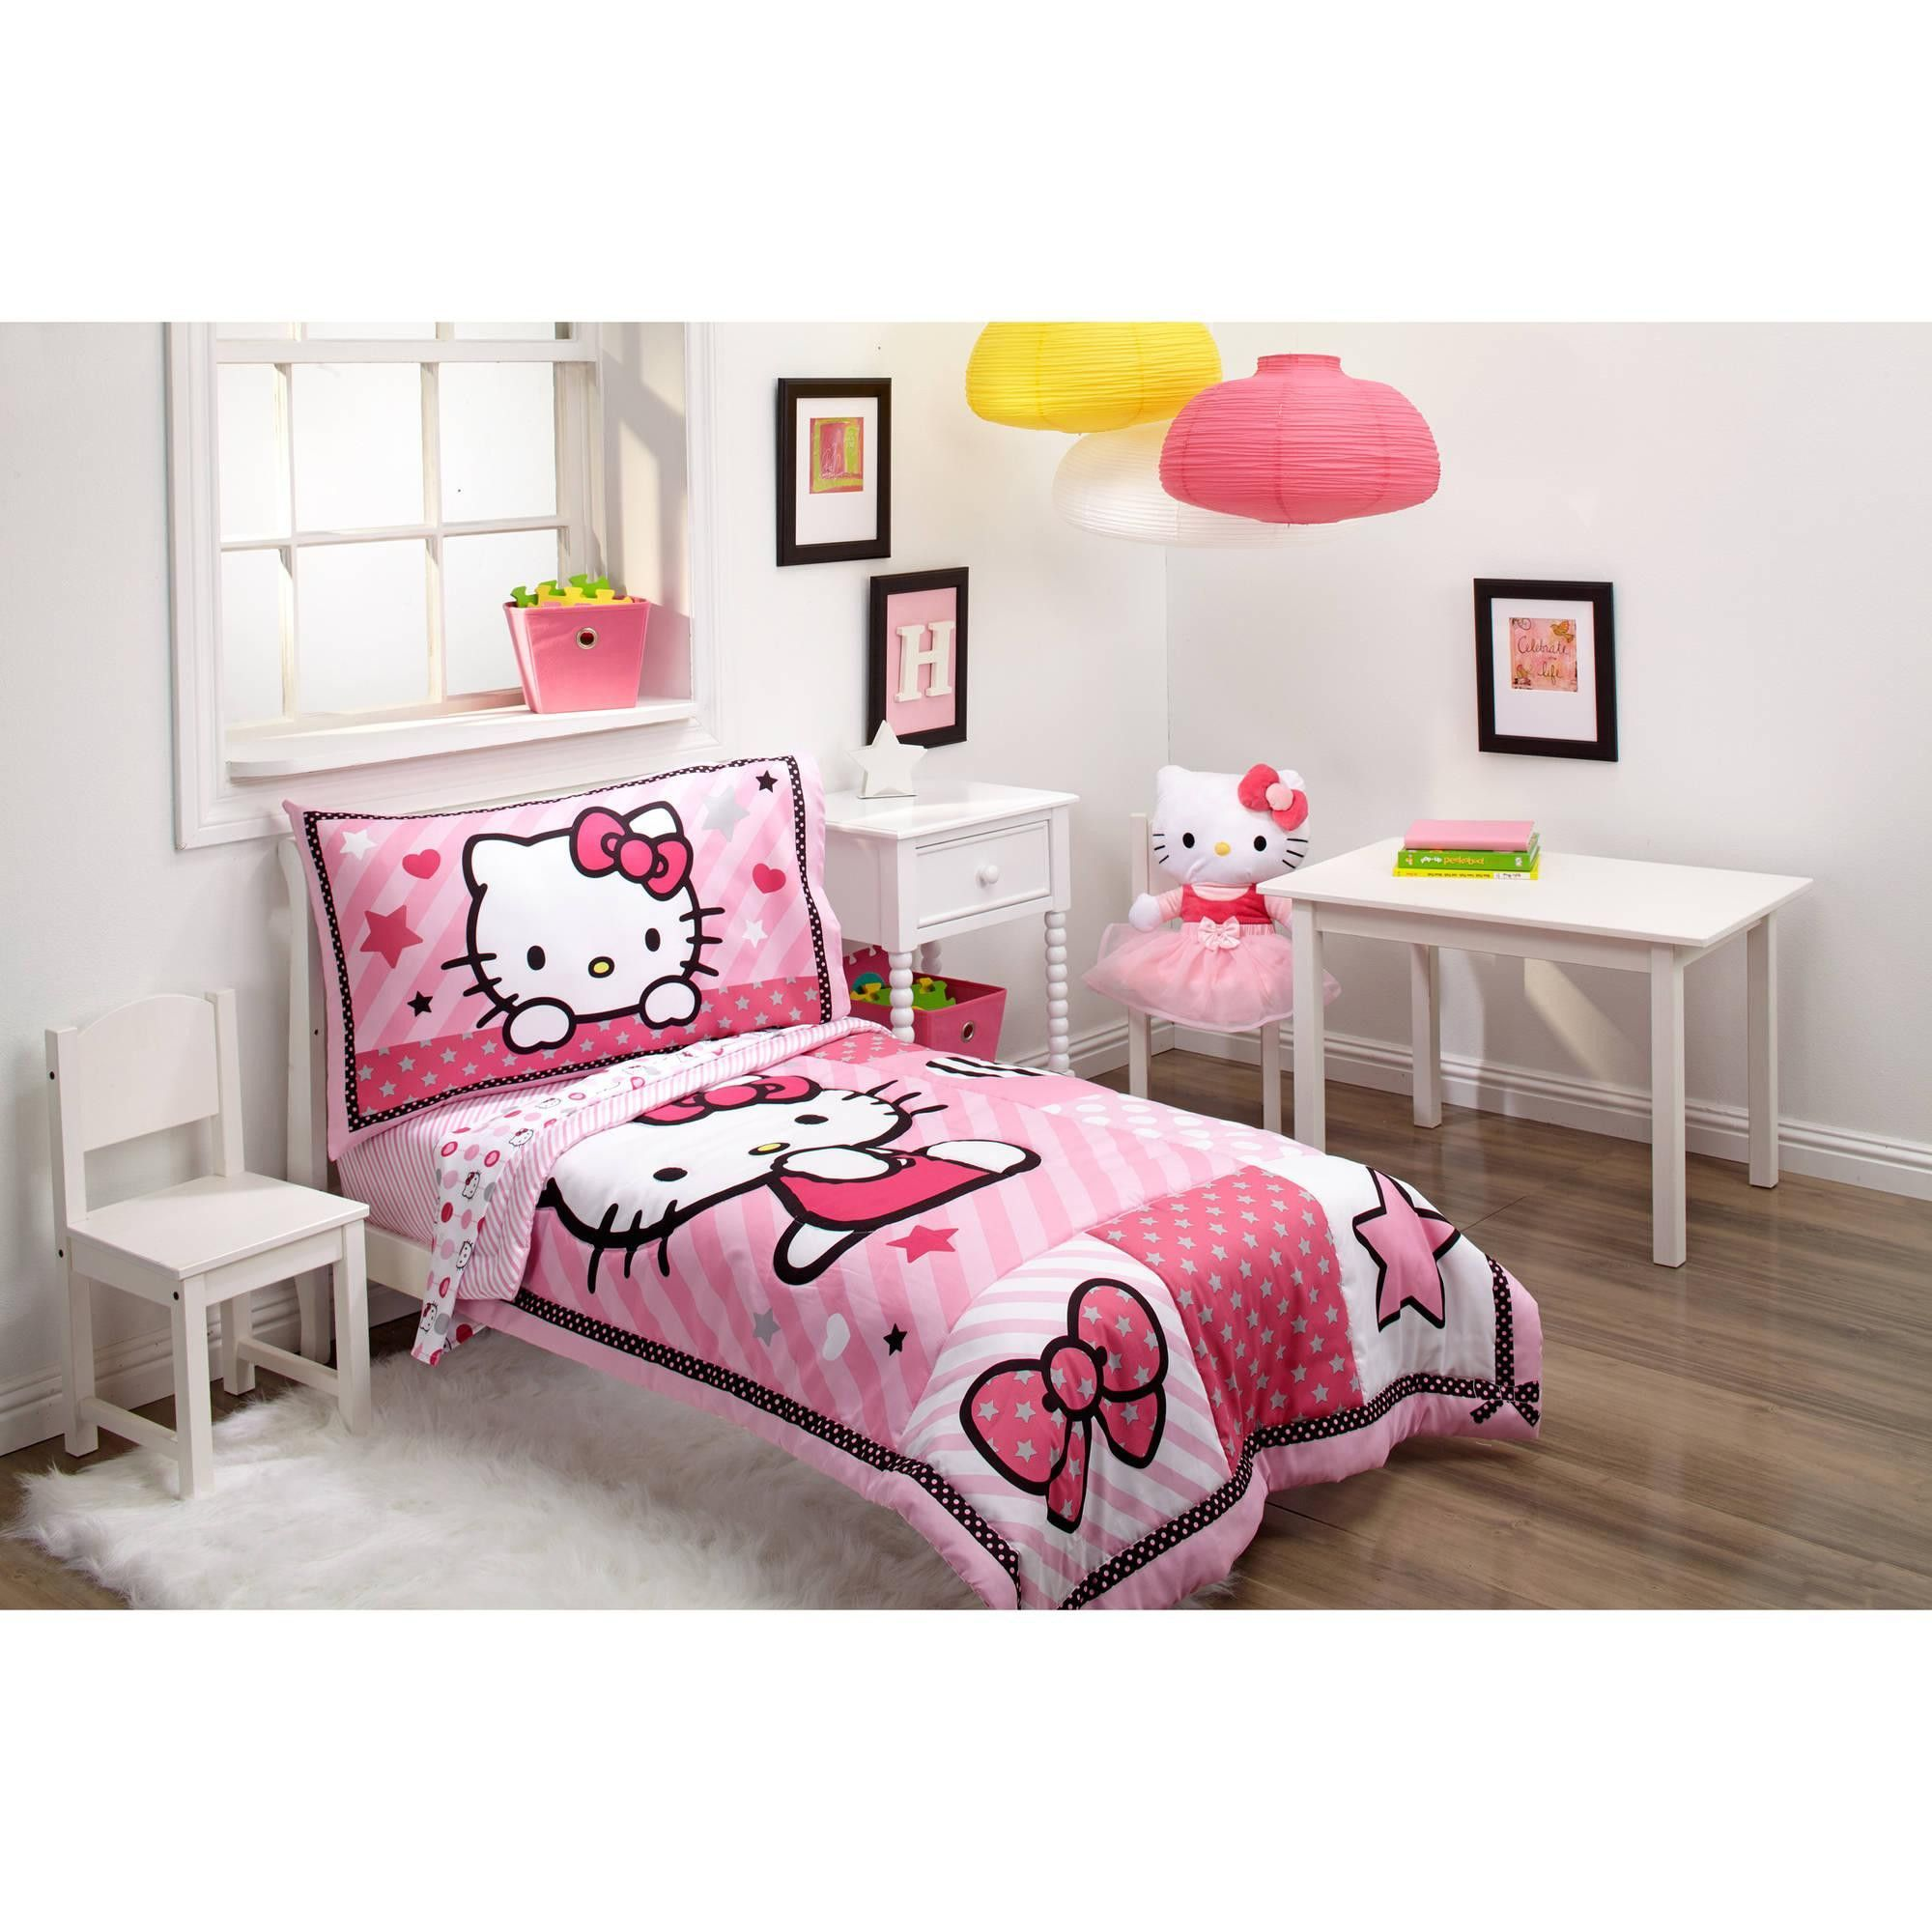 Toddler Character Bed Toddler Mattress And Complete Bedding Set